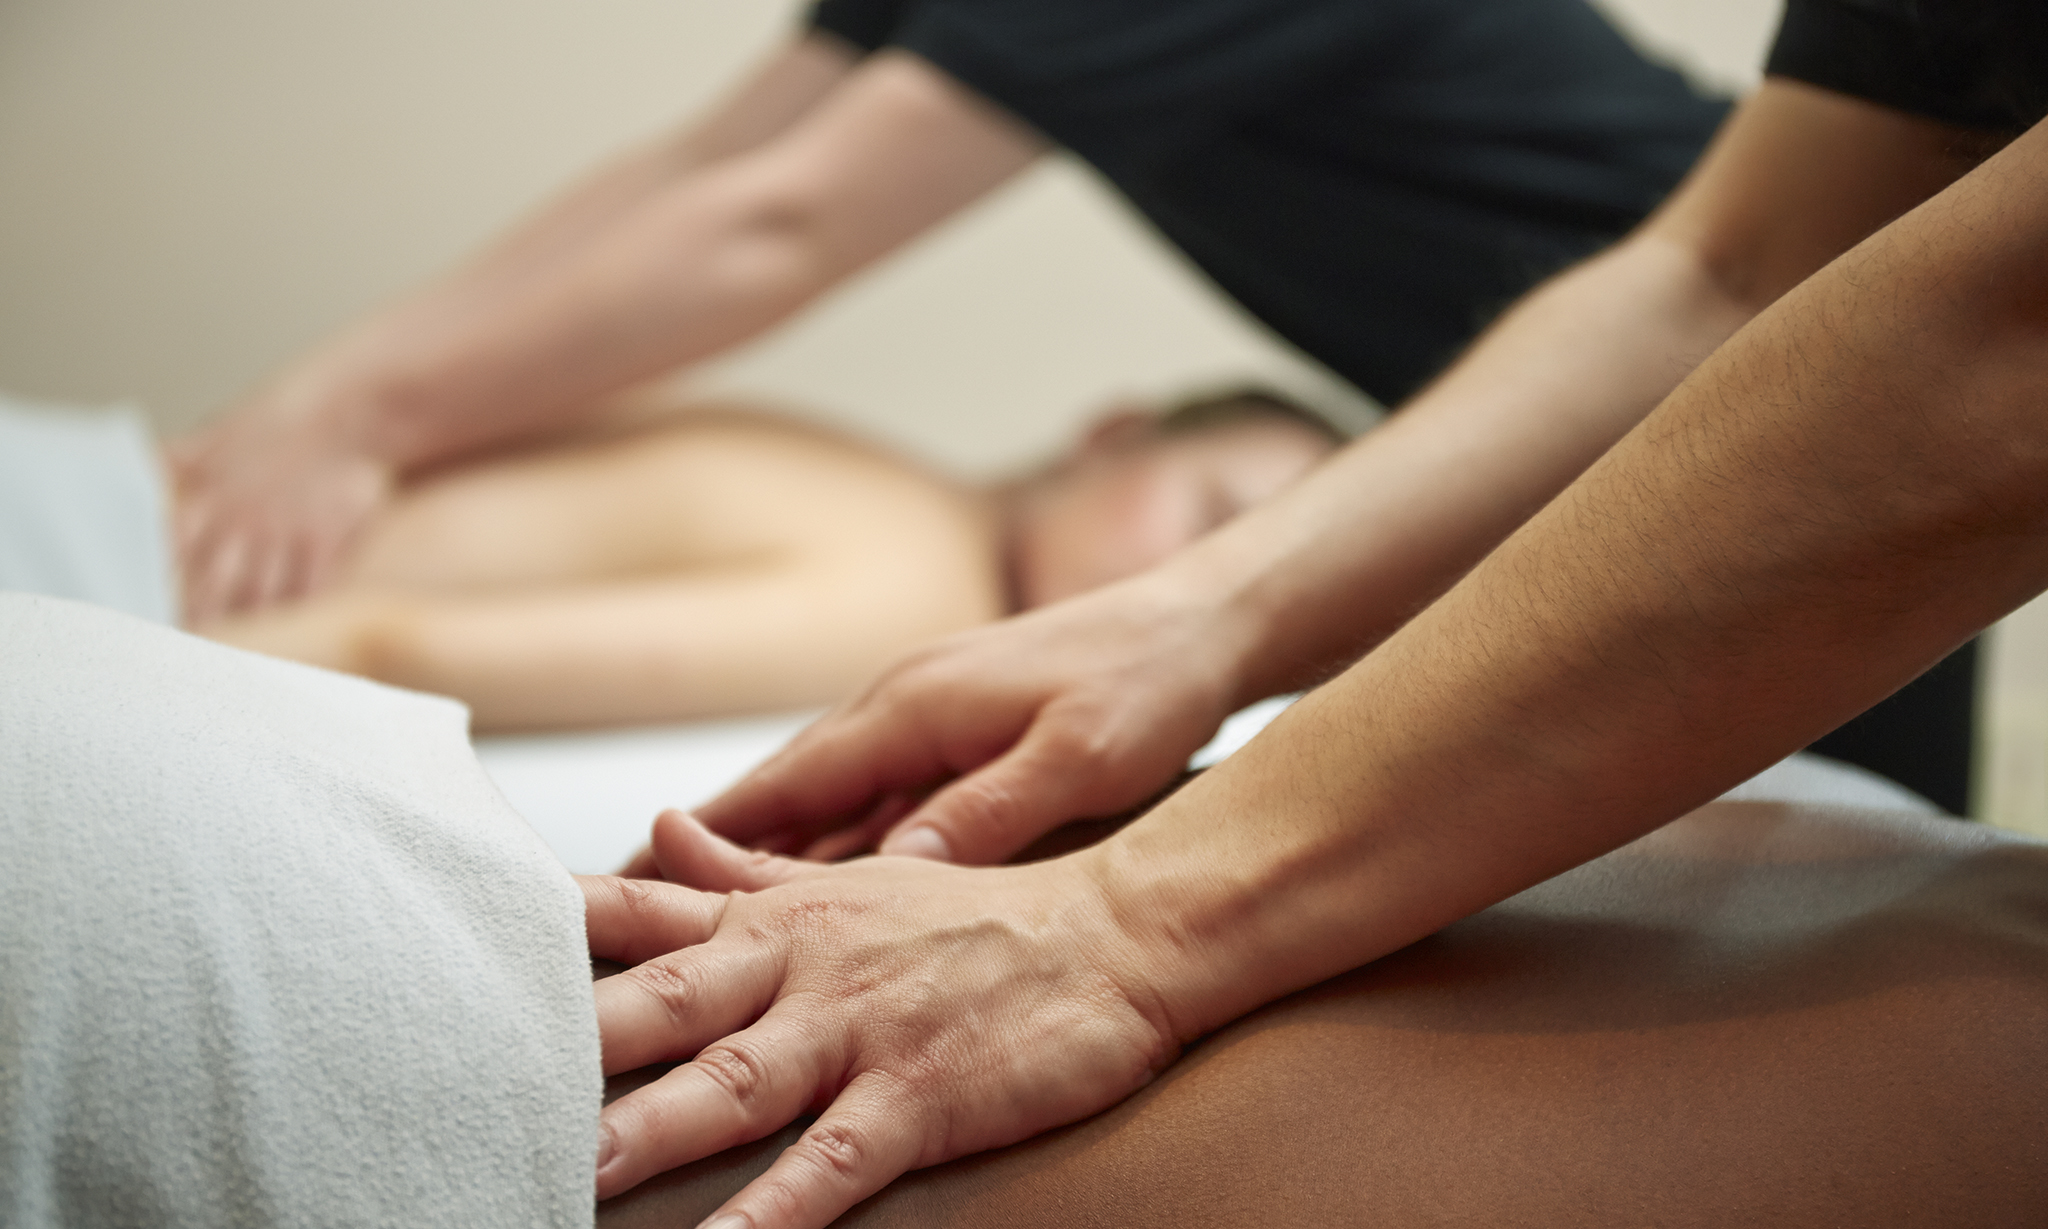 5 Unusual Las Vegas Massage And Spa Treatments